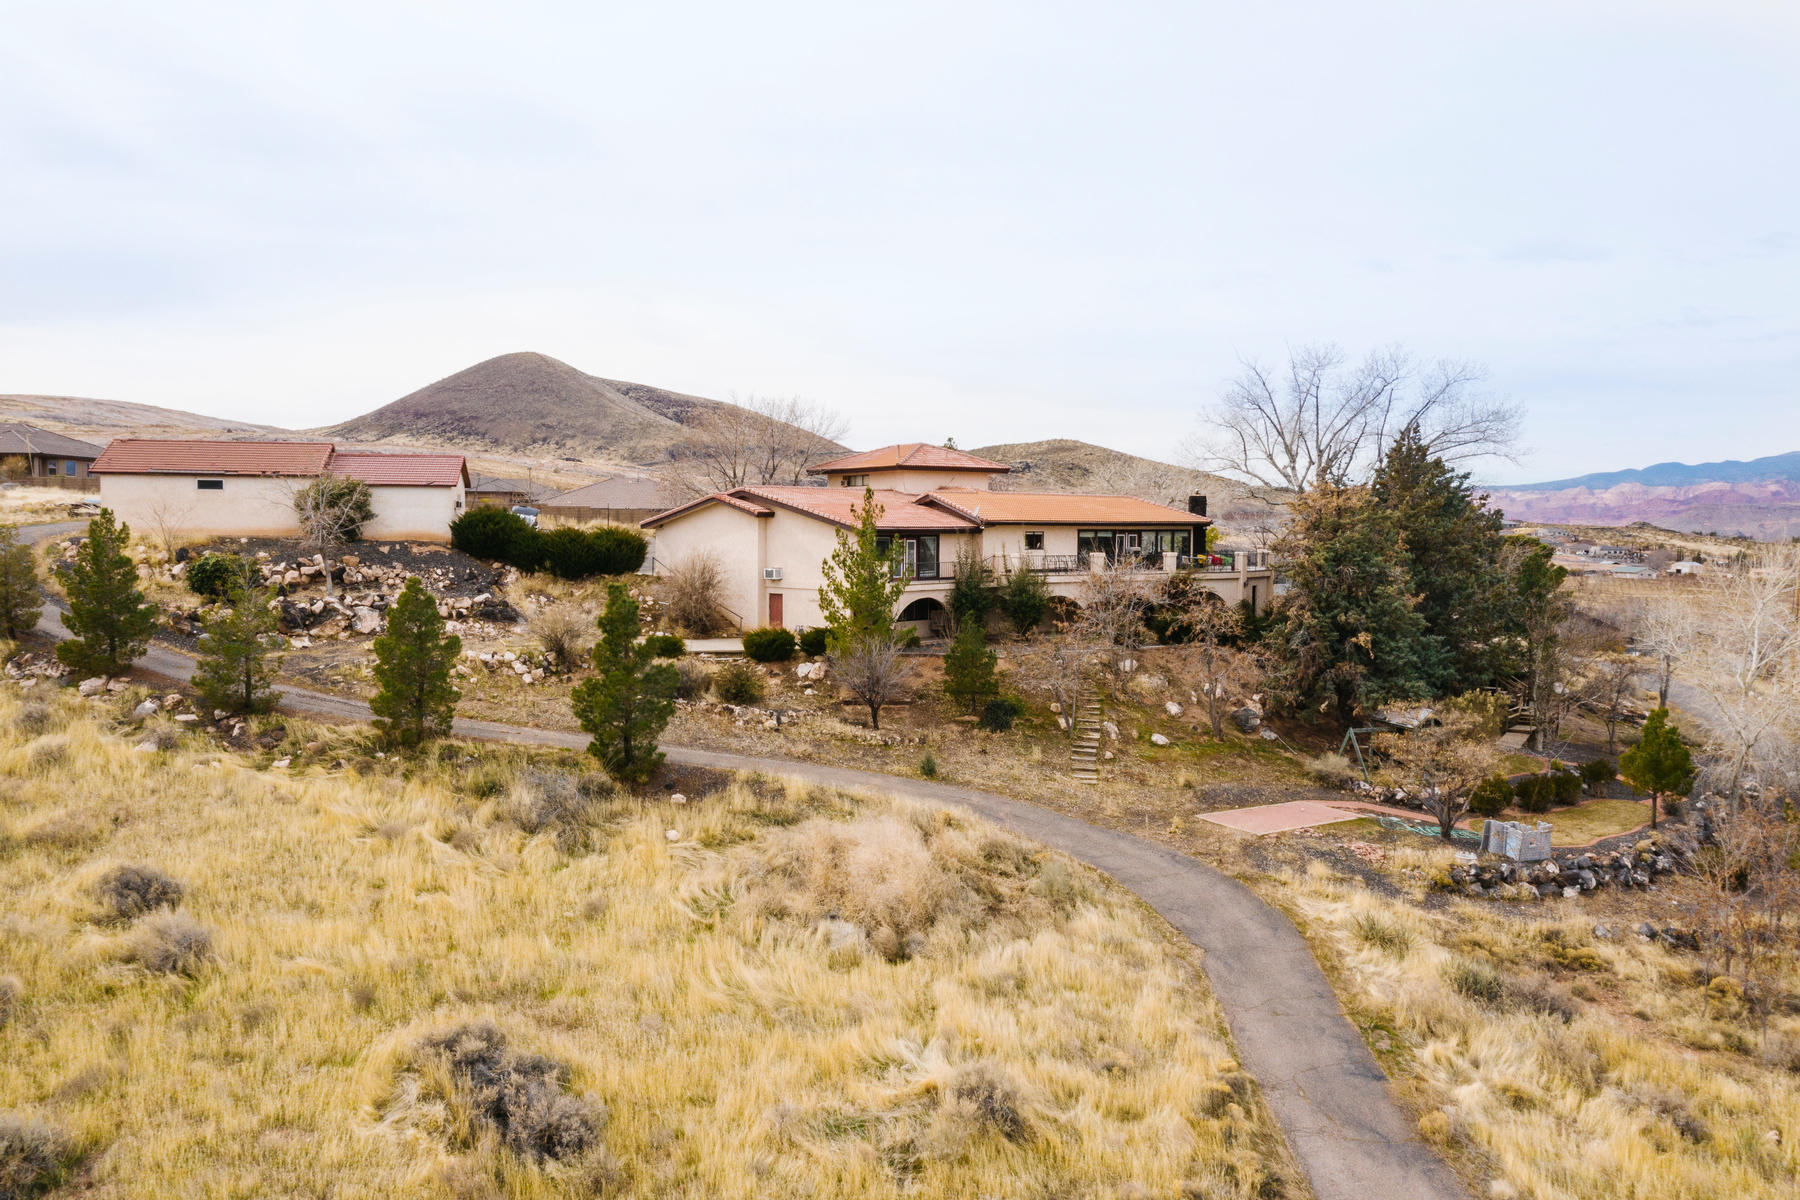 Single Family Homes for Sale at Majestic Hurricane Beauty 1377 West 650 South Hurricane, Utah 84737 United States